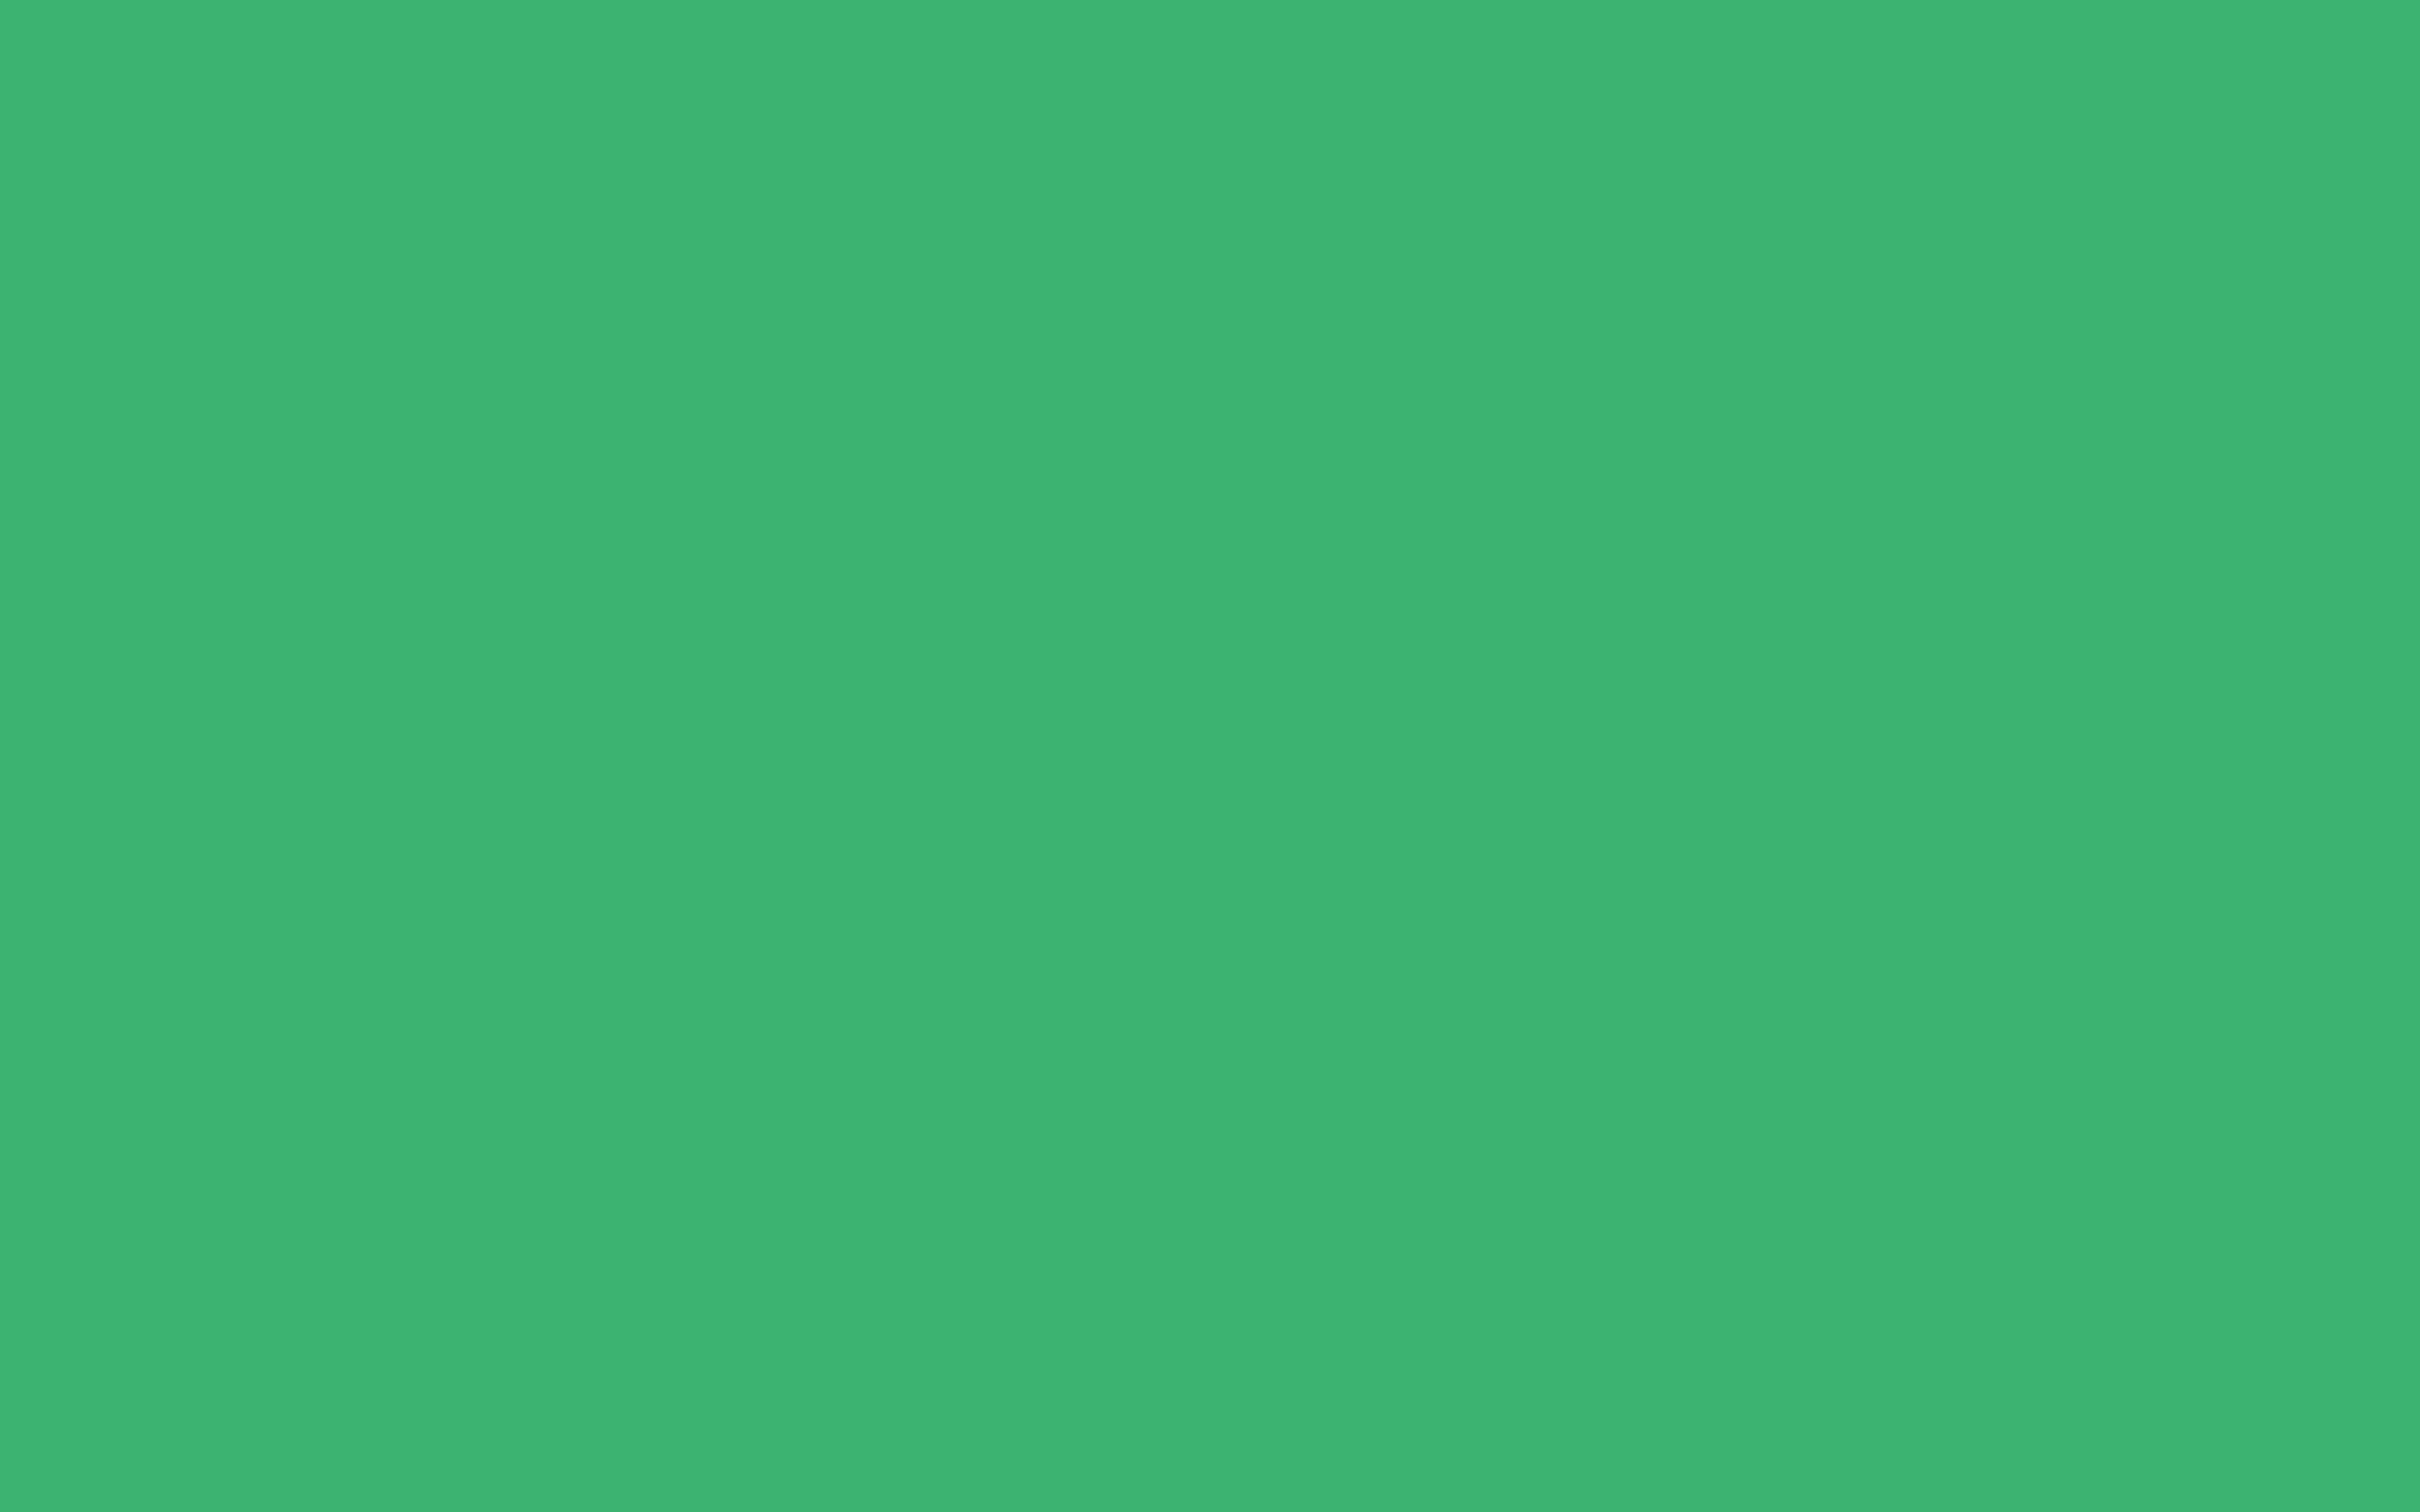 2560x1600 Medium Sea Green Solid Color Background